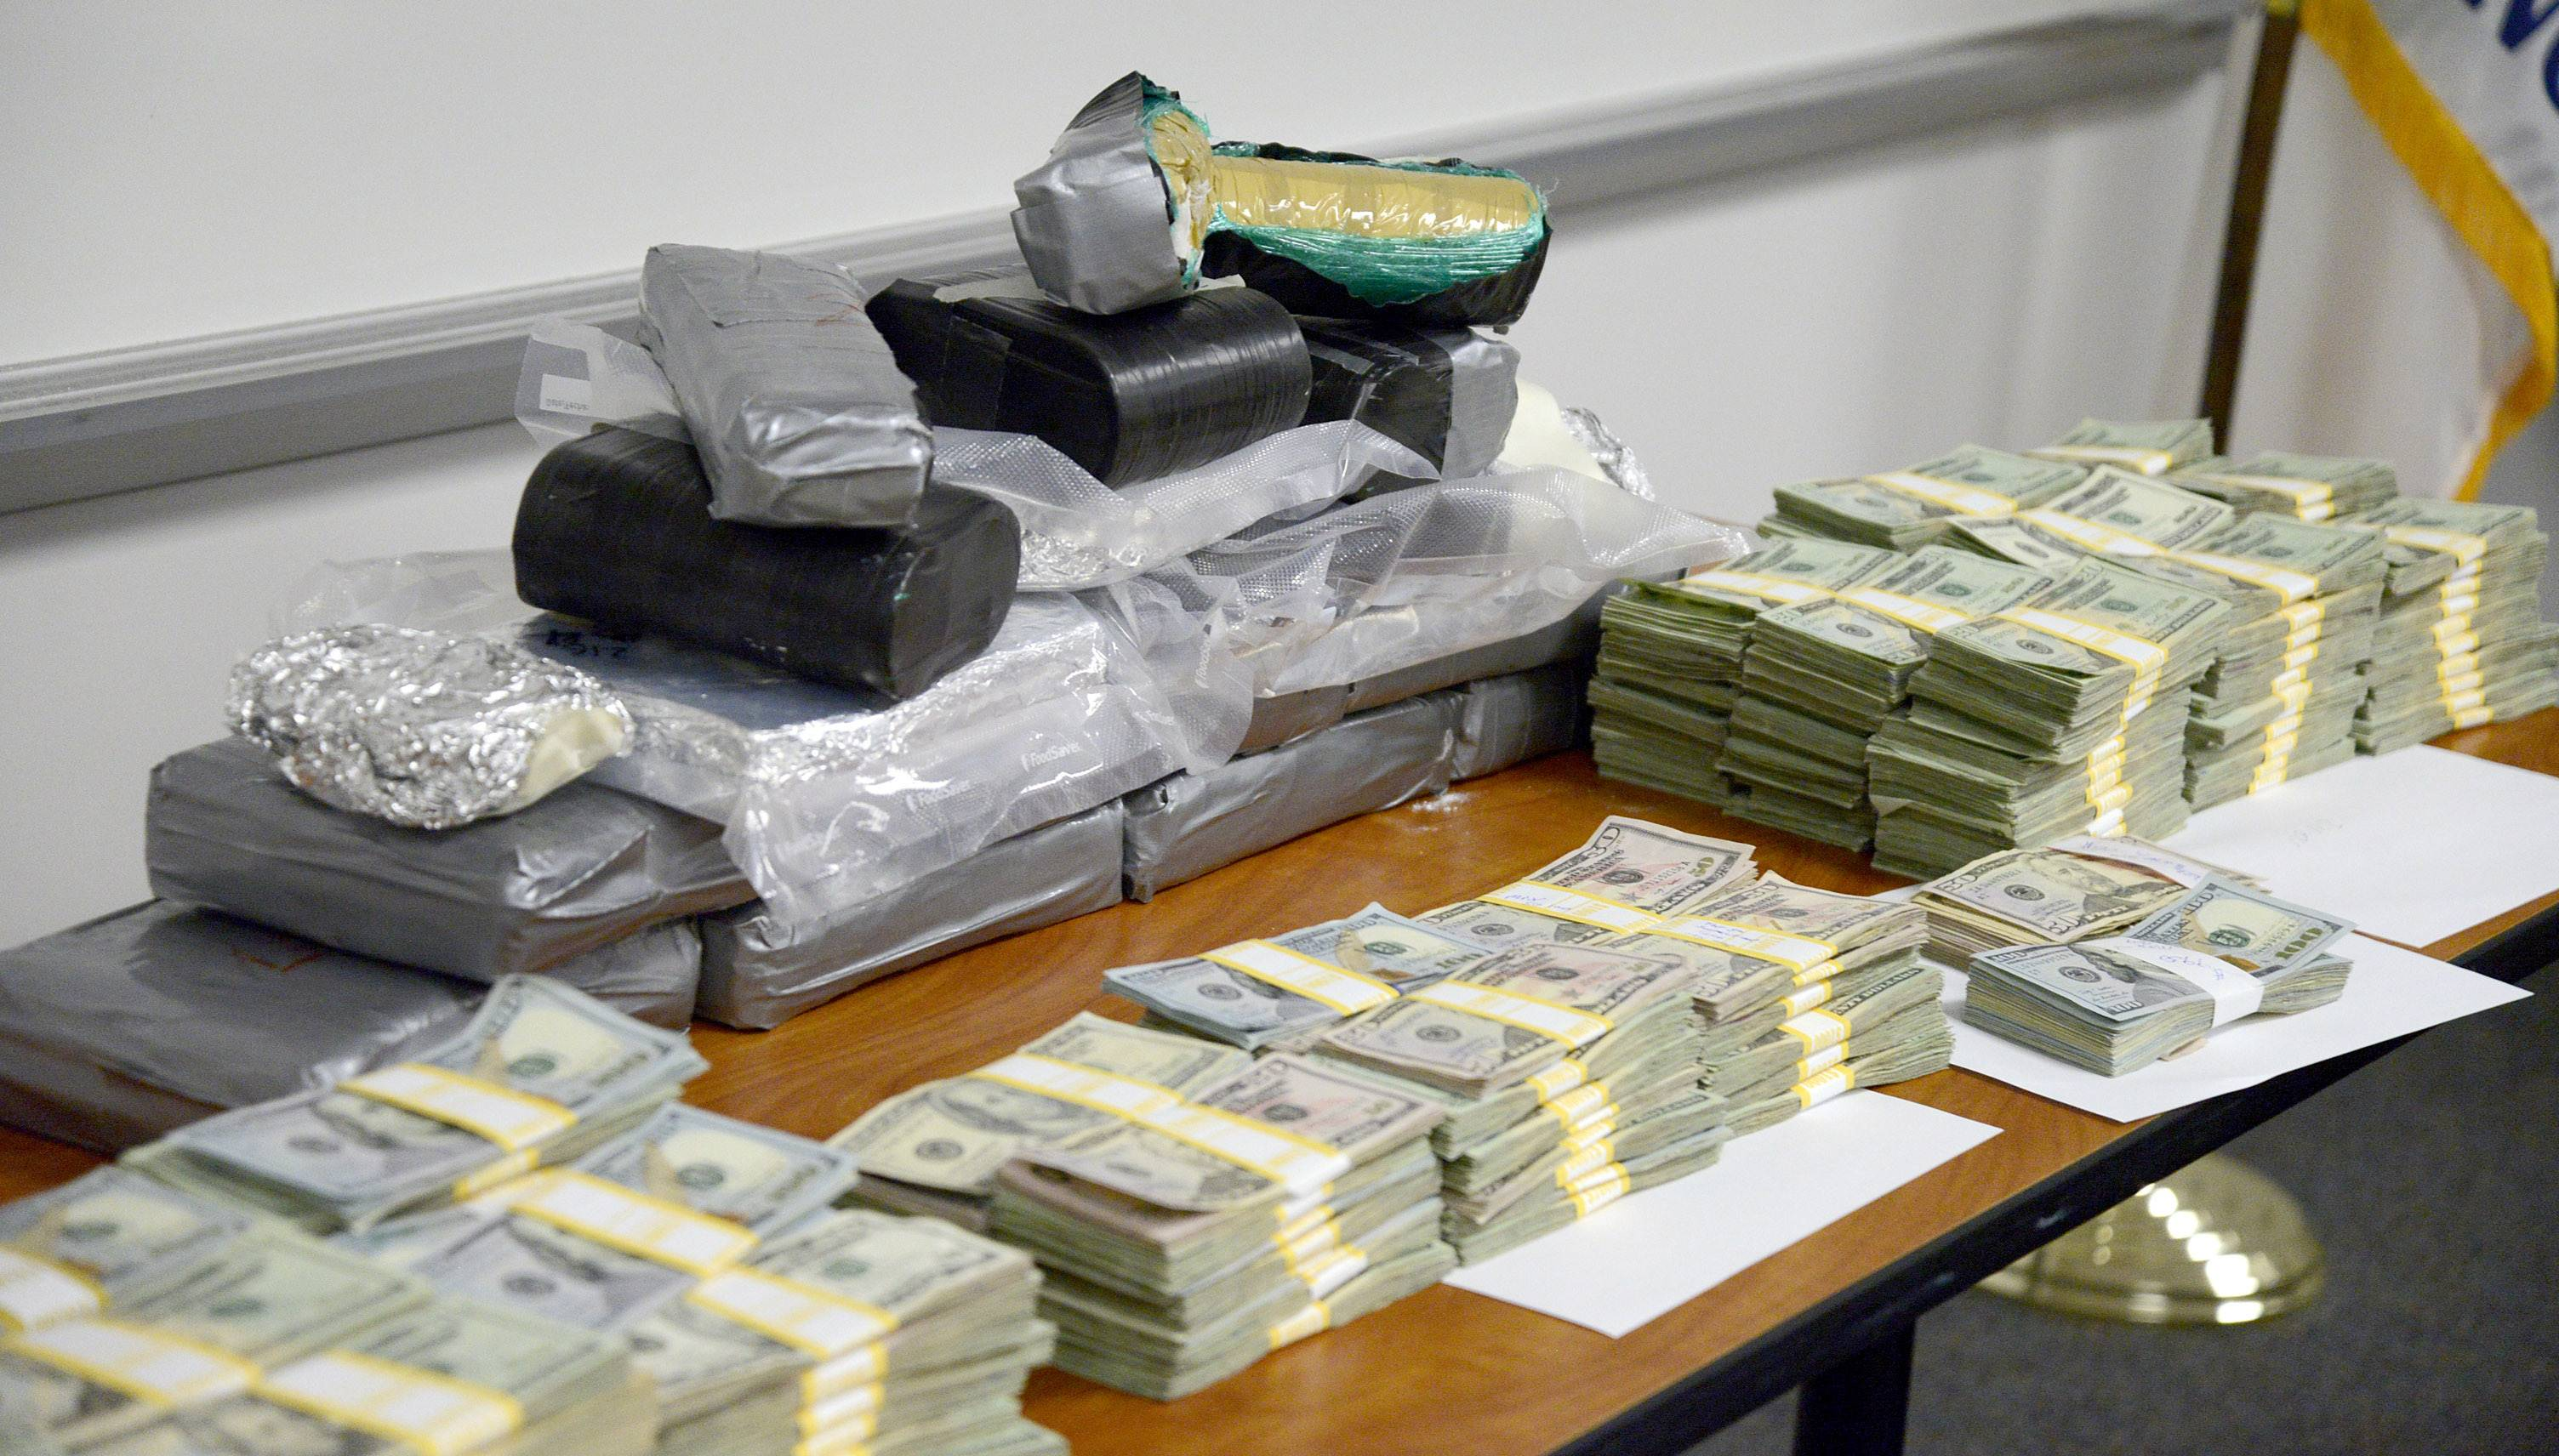 Kane County State's Attorney Joe McMahon and Kane County Sheriff Pat Perez announced Friday a major seizure of cocaine plus $259,569 in cash from an Aurora home.